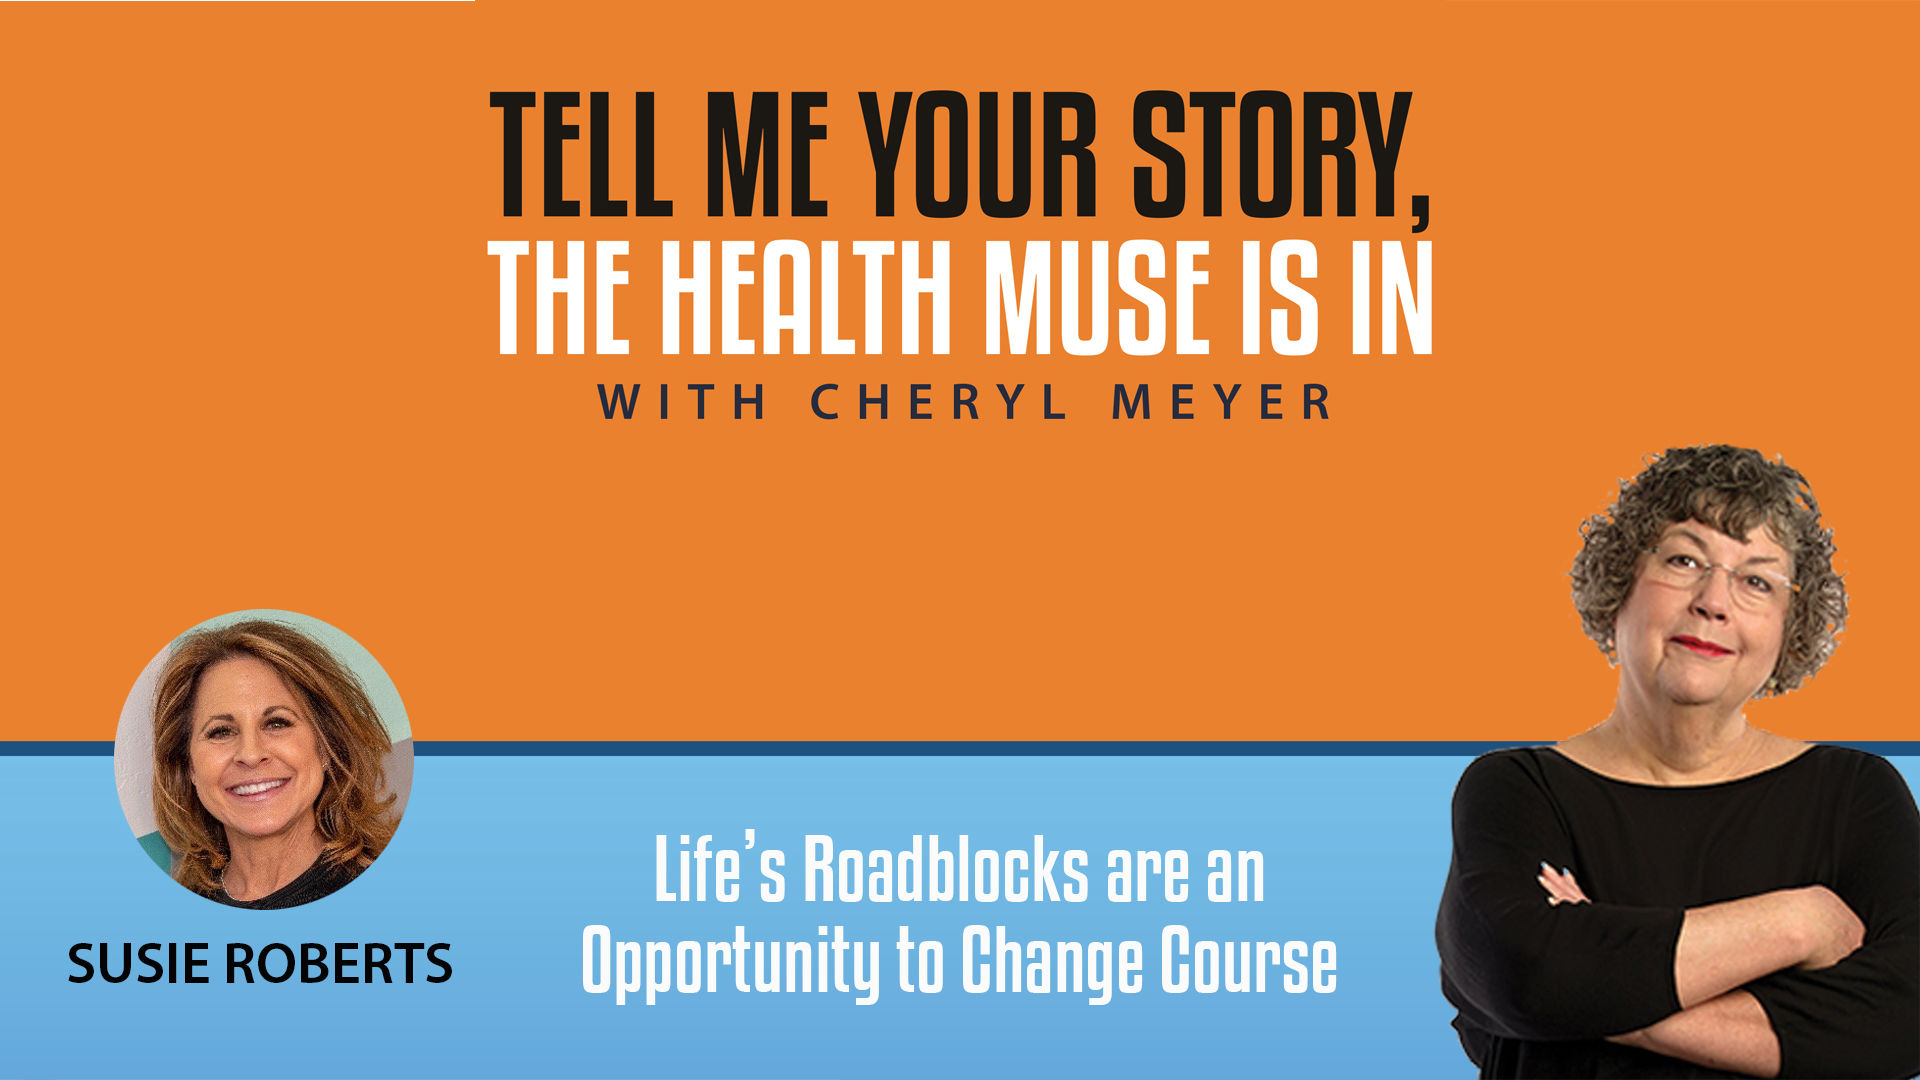 Tell Me Your Story - Susie Roberts. Lifes Roadblocks Are an Opportunity to Change Course